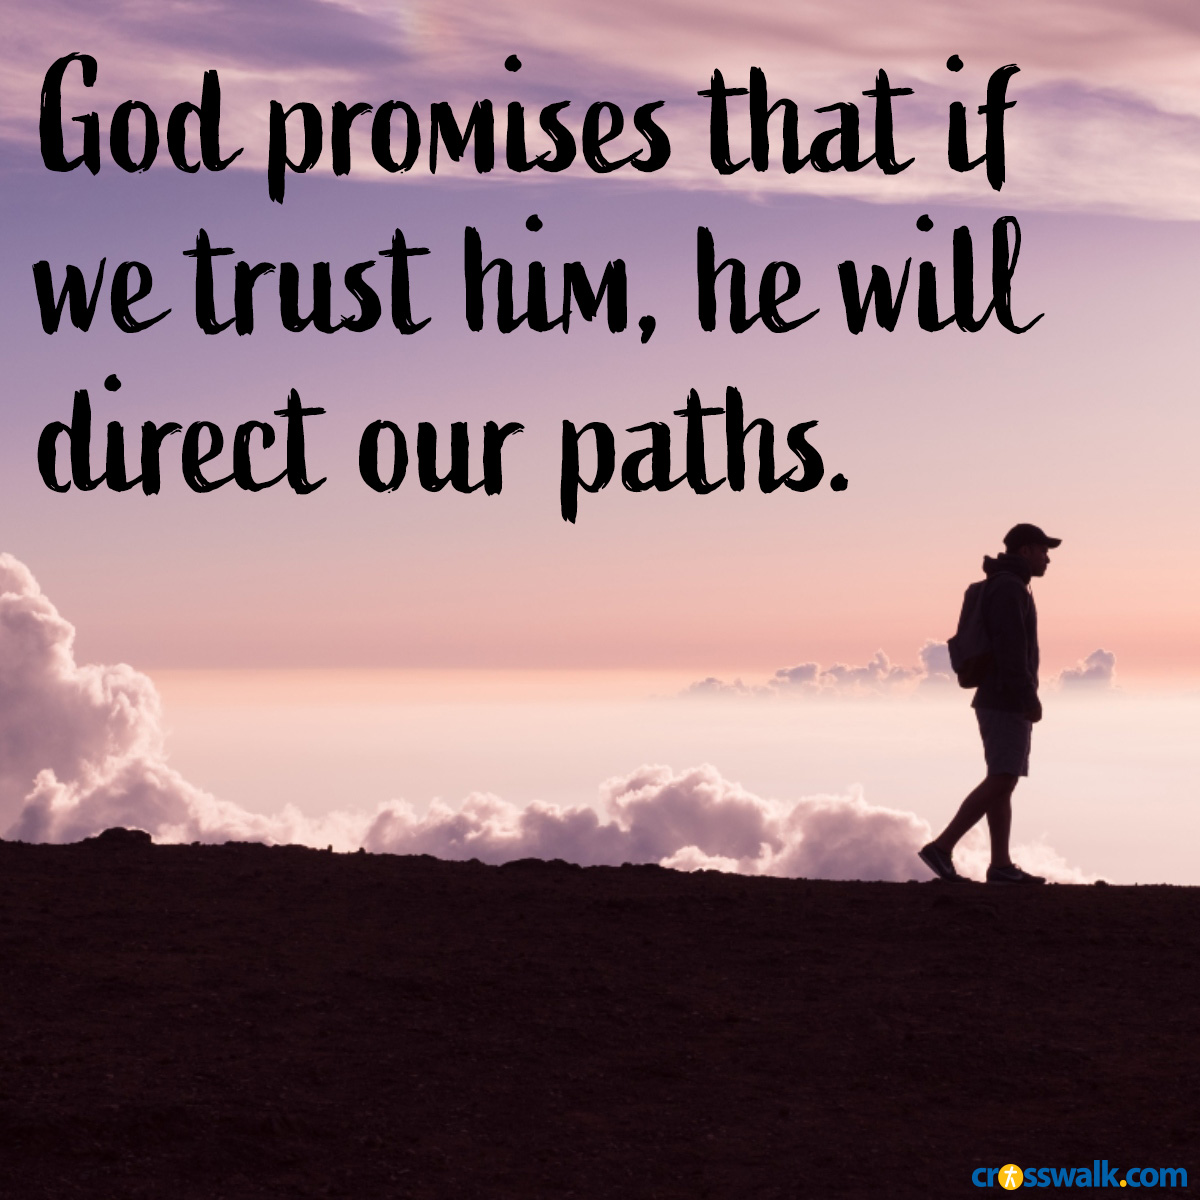 God will direct our paths, inspirational image